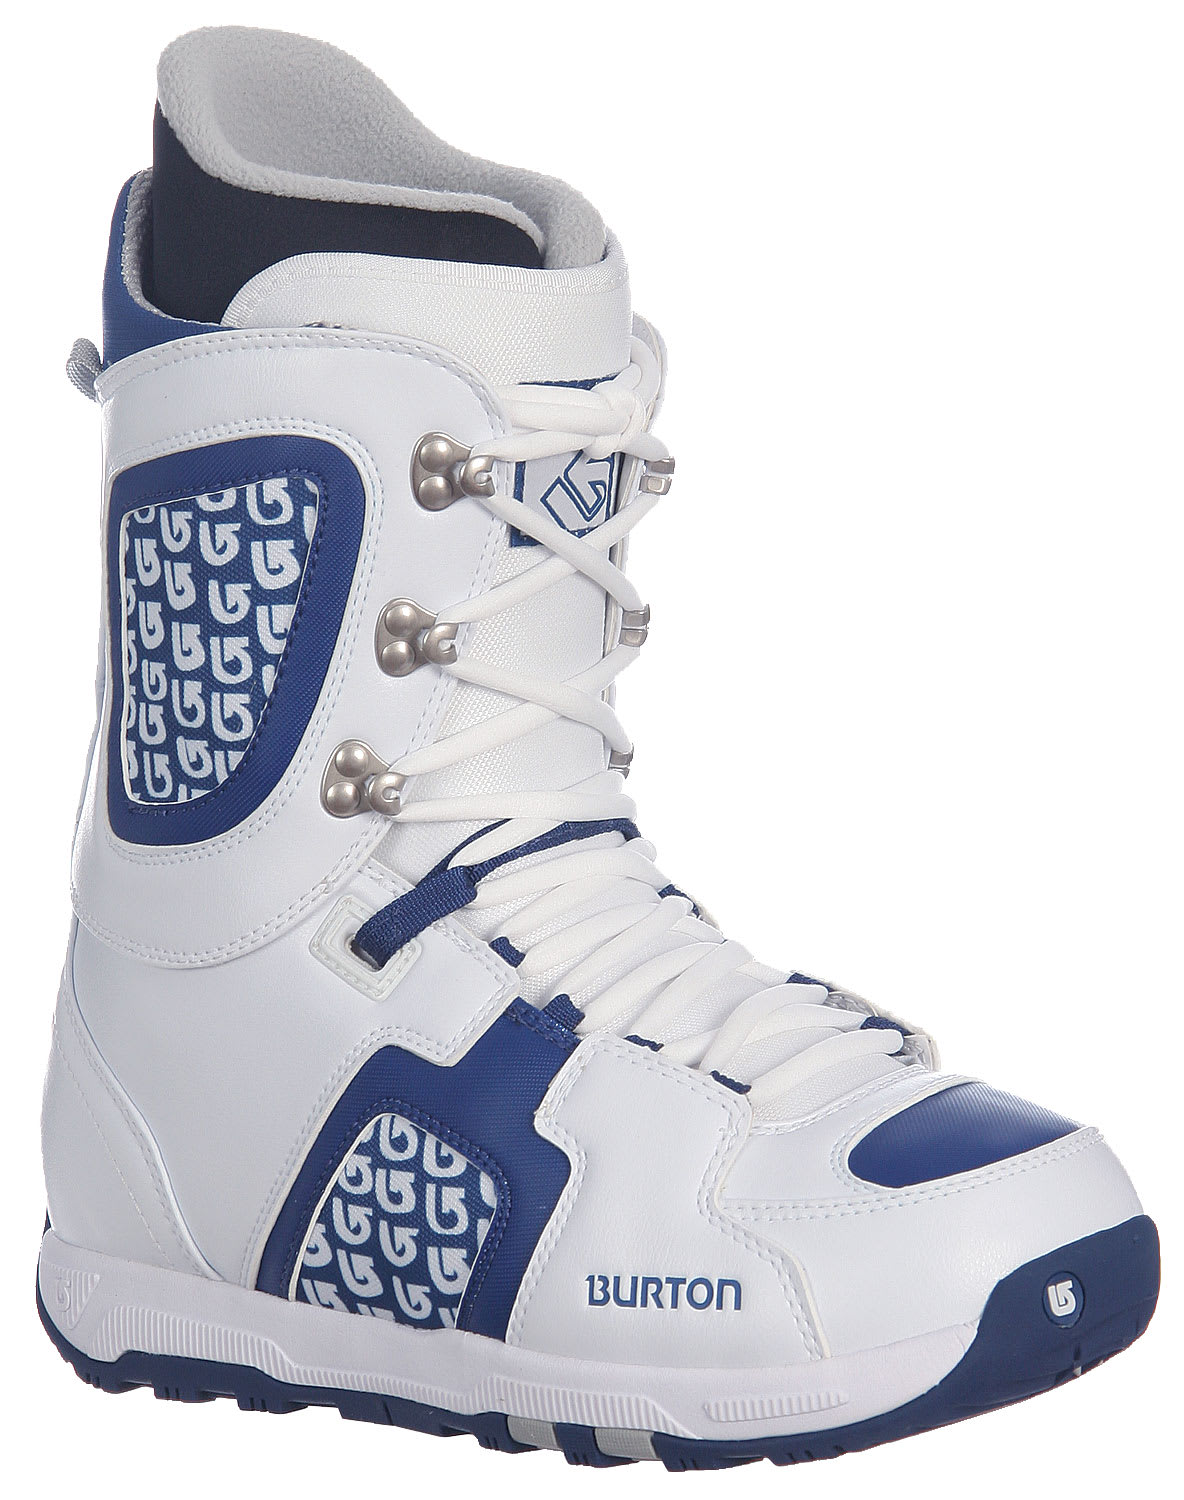 Shop for Burton Freestyle Snowboard Boots White/Blue - Kid's